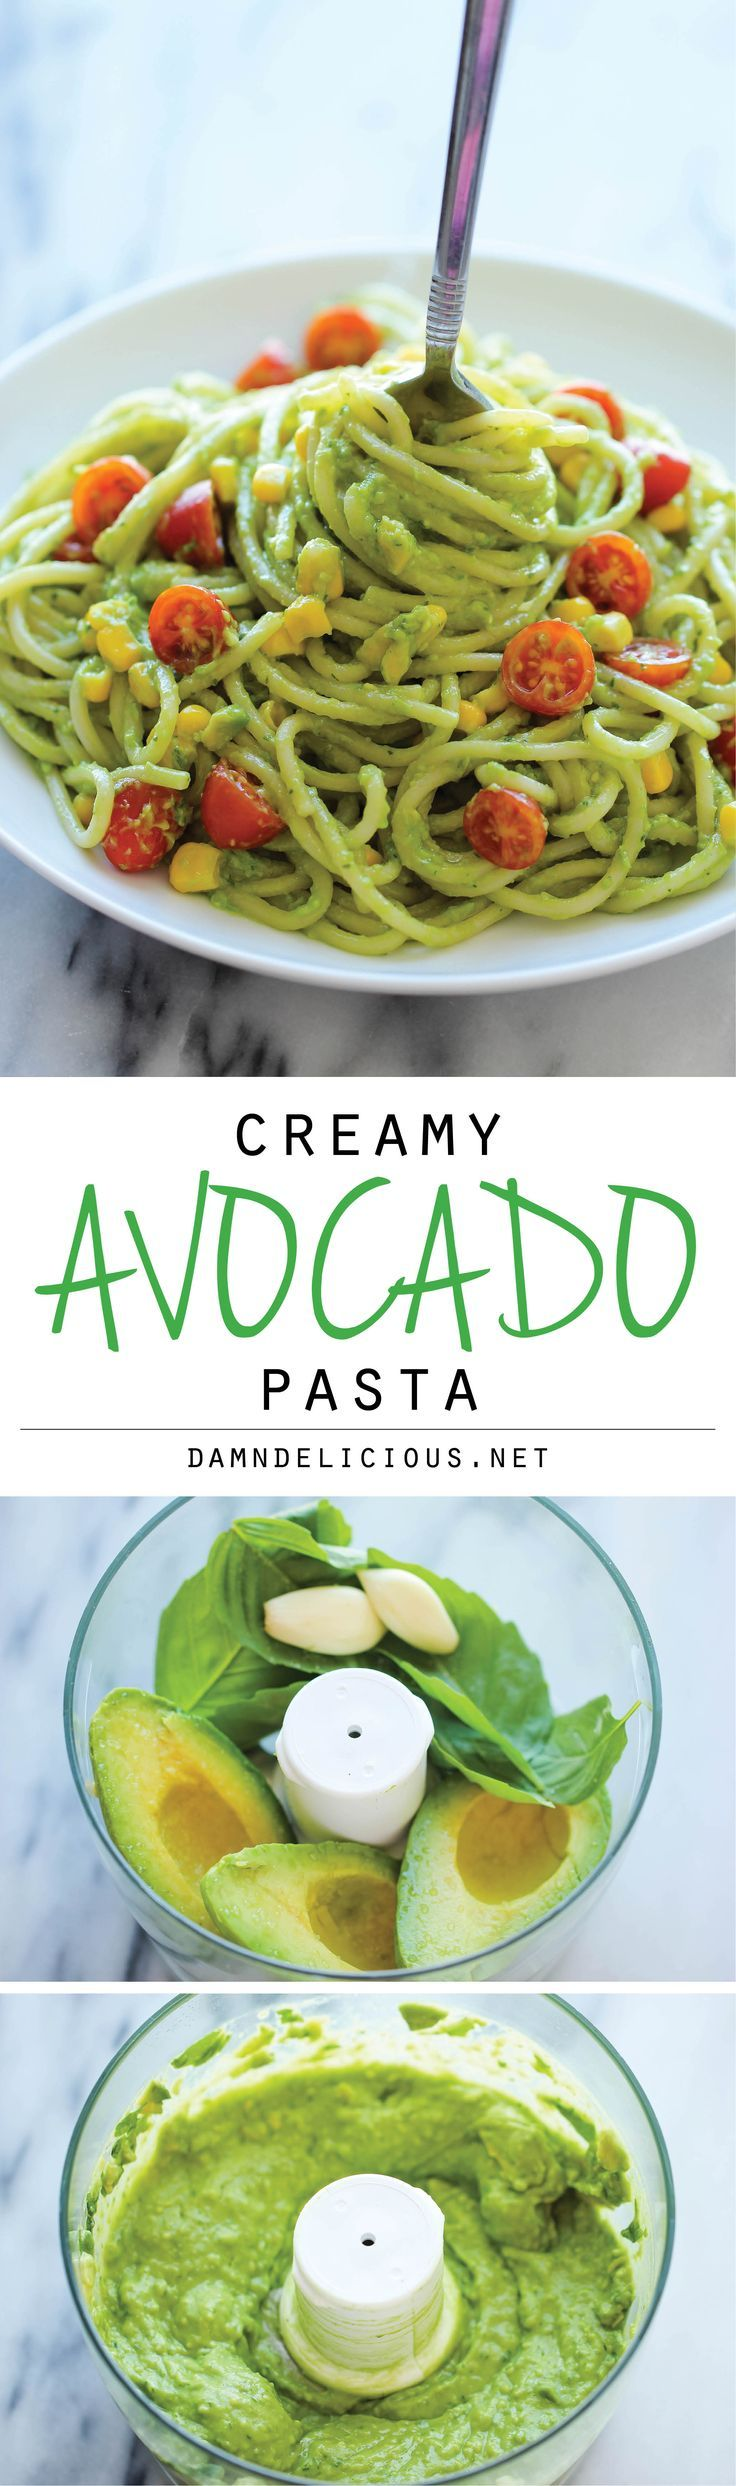 Avocado Pasta // In need of a detox? Get your teatox on with 10% off using our discount code 'Pinterest10' on www.skinnymetea.com.au X